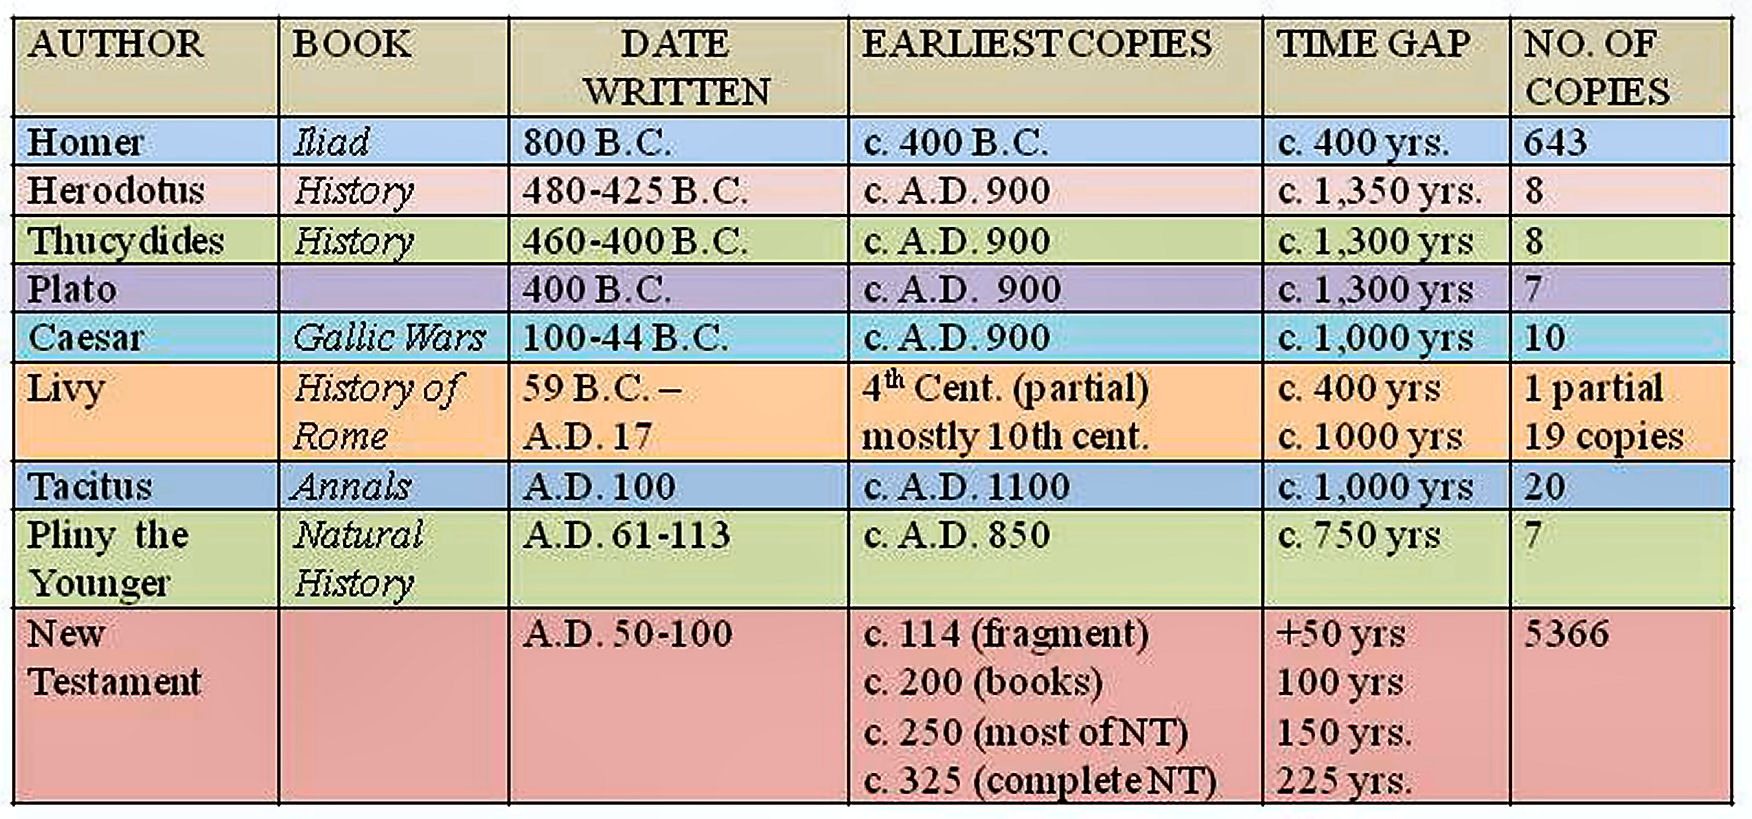 dating the oldest new testament manuscripts Date written: earliest copy  below is a chart with some of the oldest extant new testament manuscripts compared to when they  manuscript.